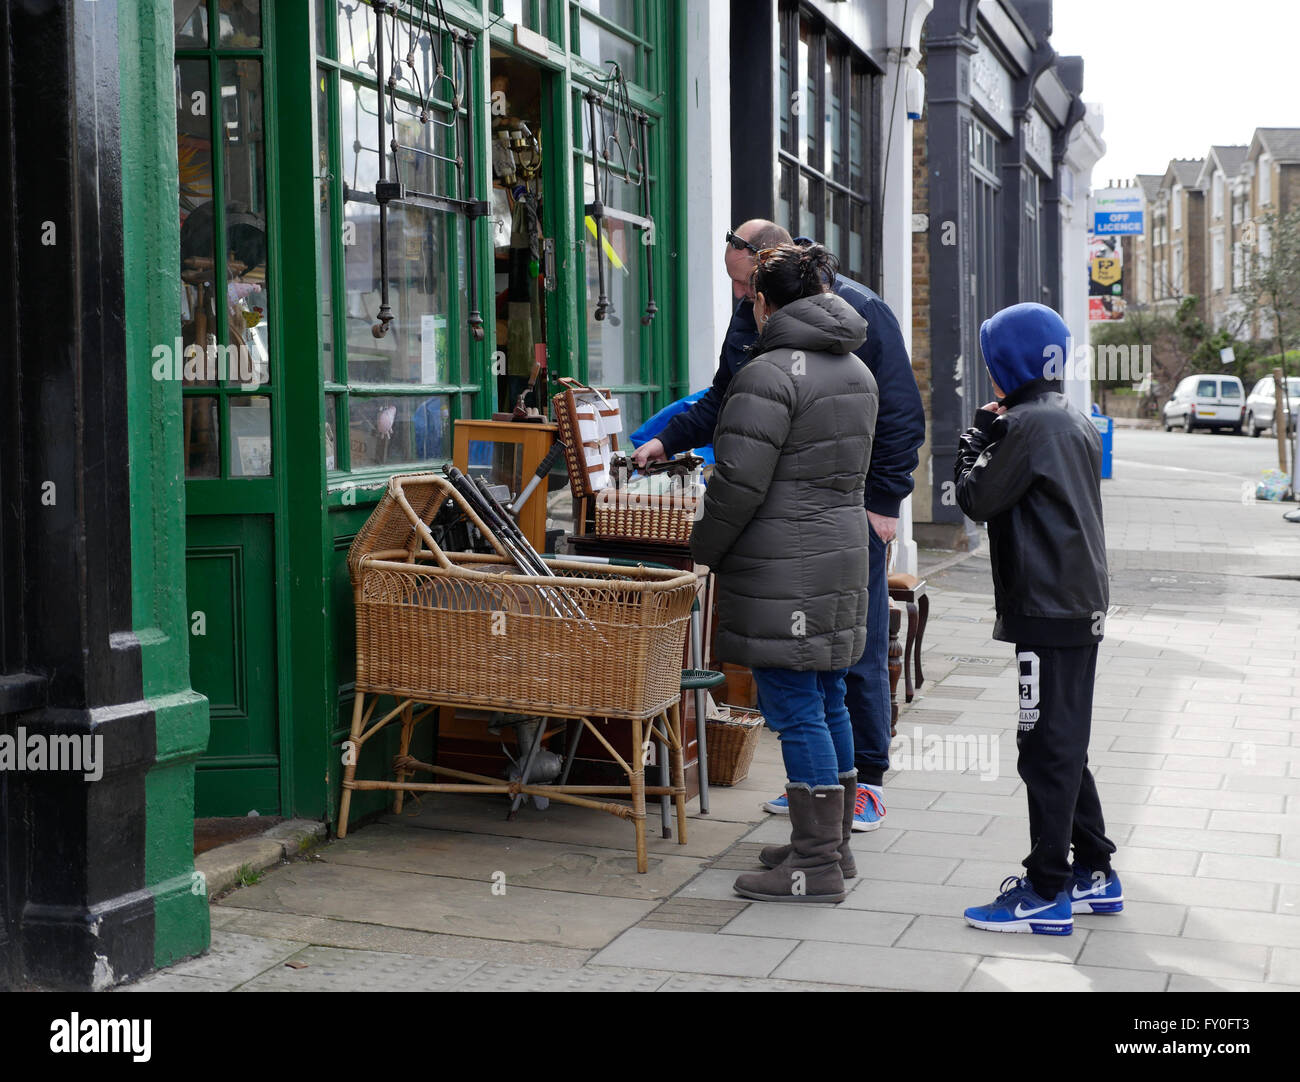 A family browse in the window of a curiosity shop in London - Stock Image